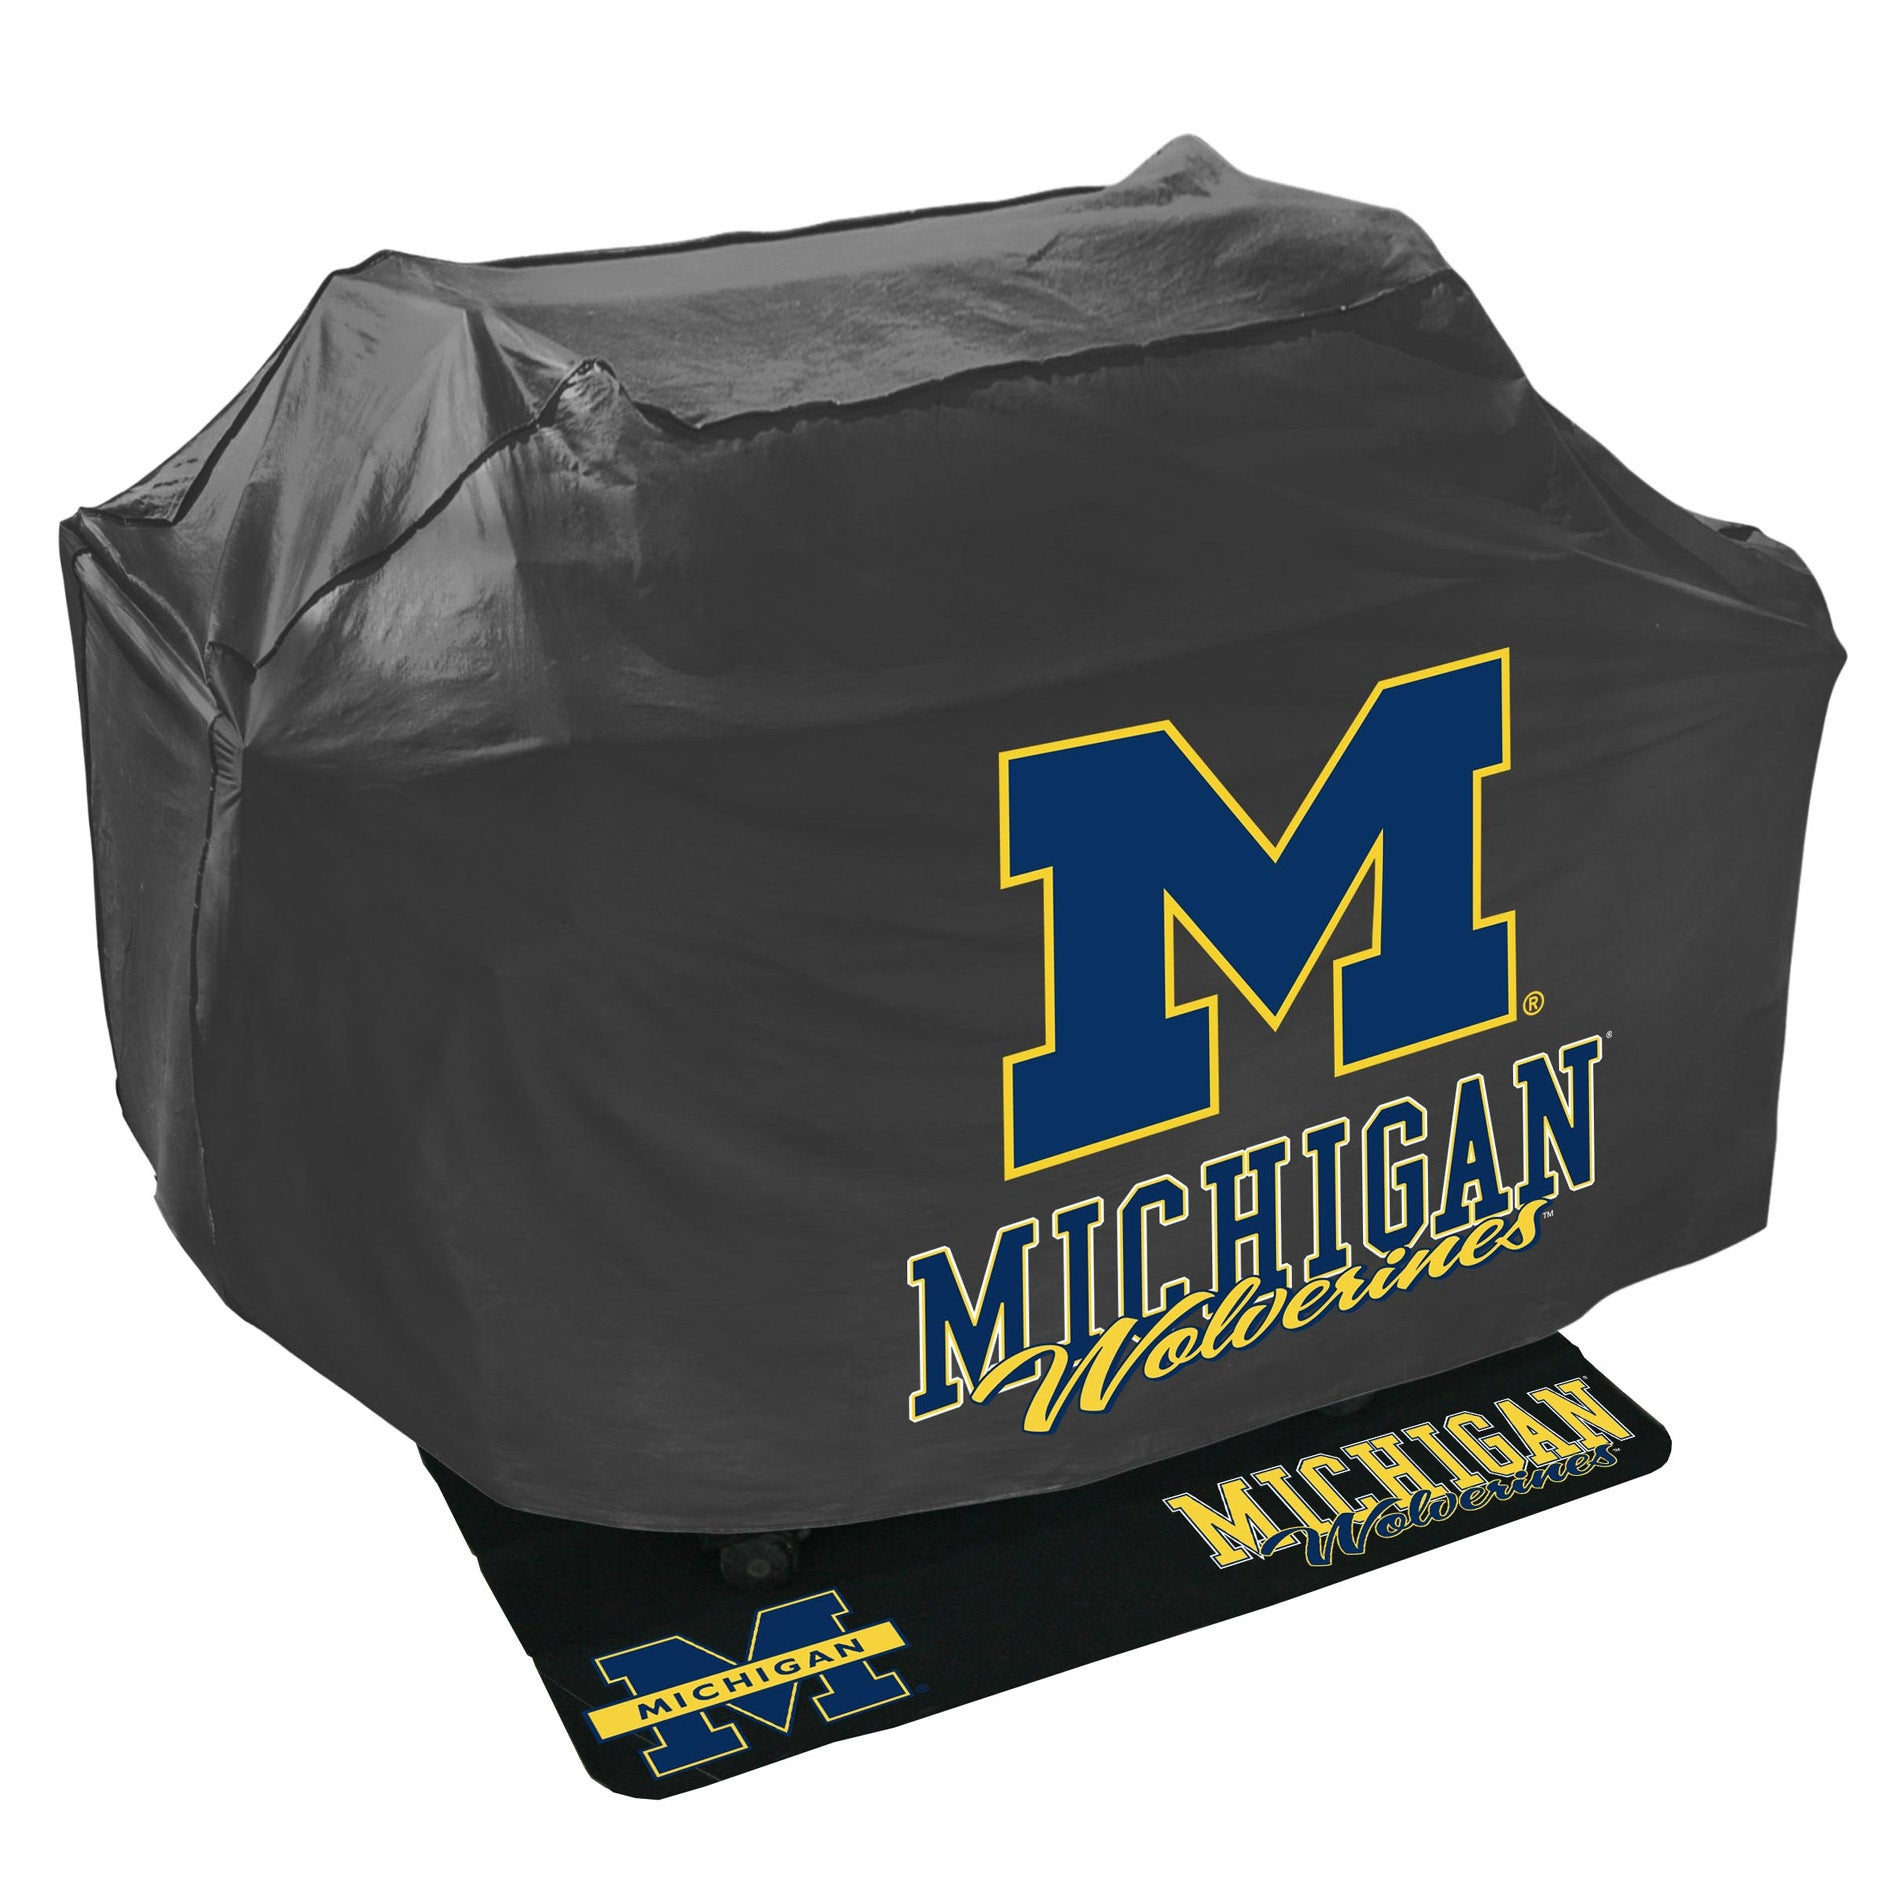 Michigan Wolverines Grill Cover and Mat Set